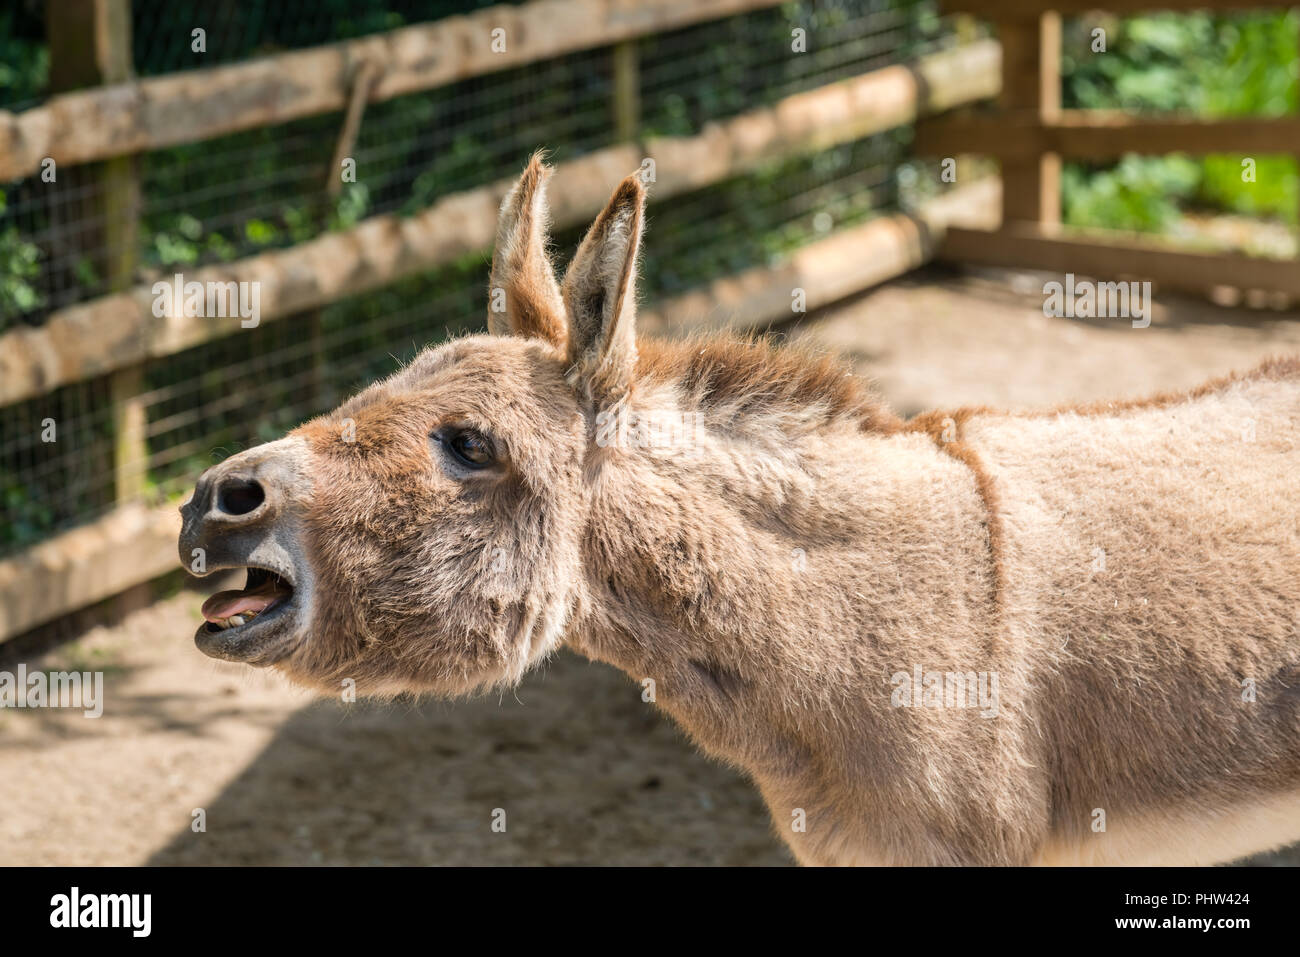 Large furry donkey shouting loudly - Stock Image